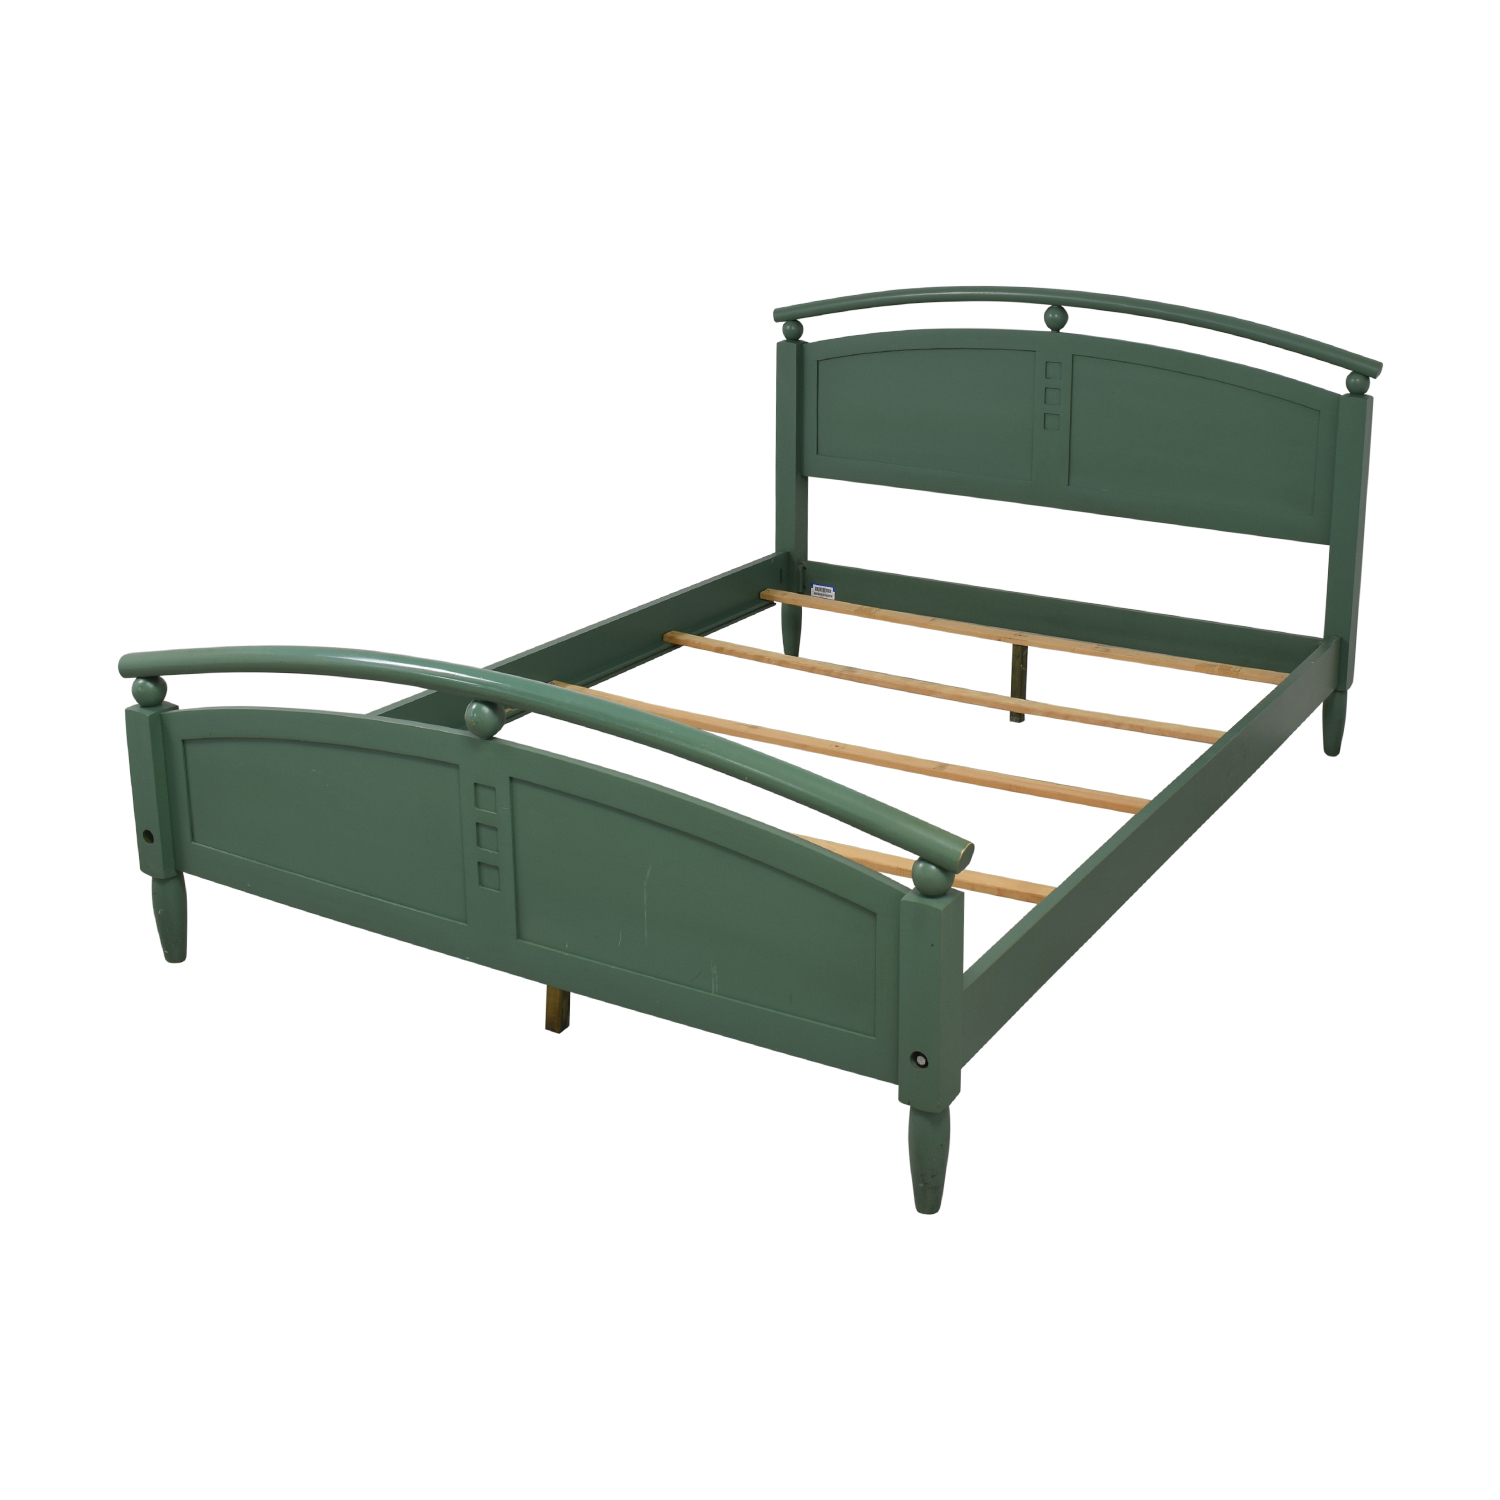 Ethan Allen Ethan Allen American Dimensions Double Arched Queen Bed Beds